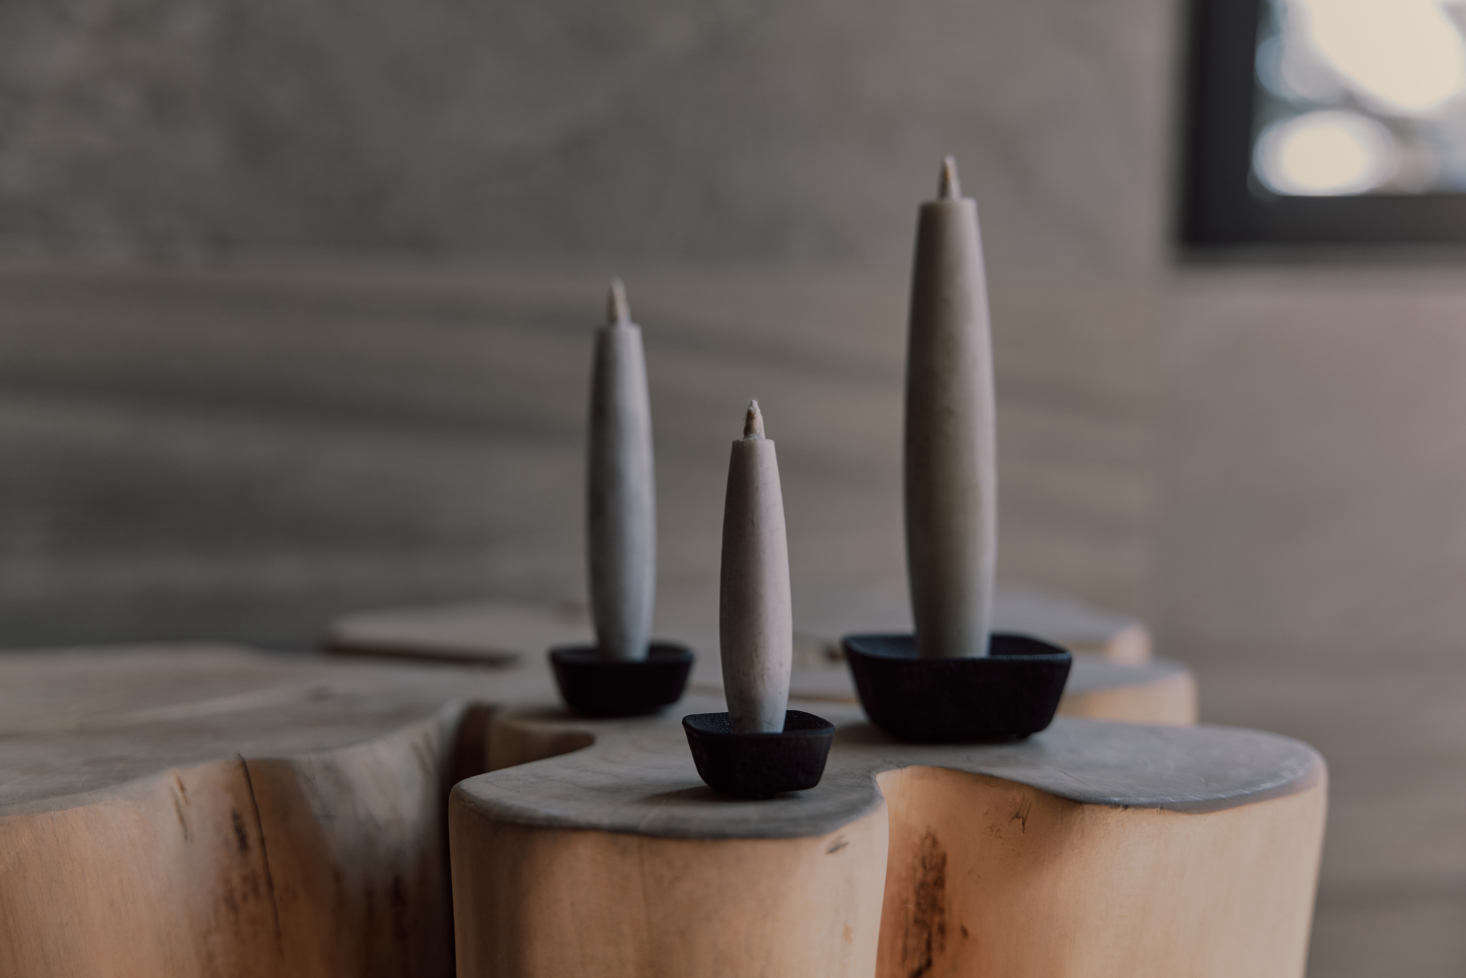 The perfect addition to dark winter days: a Sumac Candle Gift Set, with sumac candles and a cast-iron candle stand, all tucked into a reusable wooden box. The candles are handmade from the fruit of the Japanese haze tree by a family-run business in Ishikawa that has been making traditional Japanese candles since 9